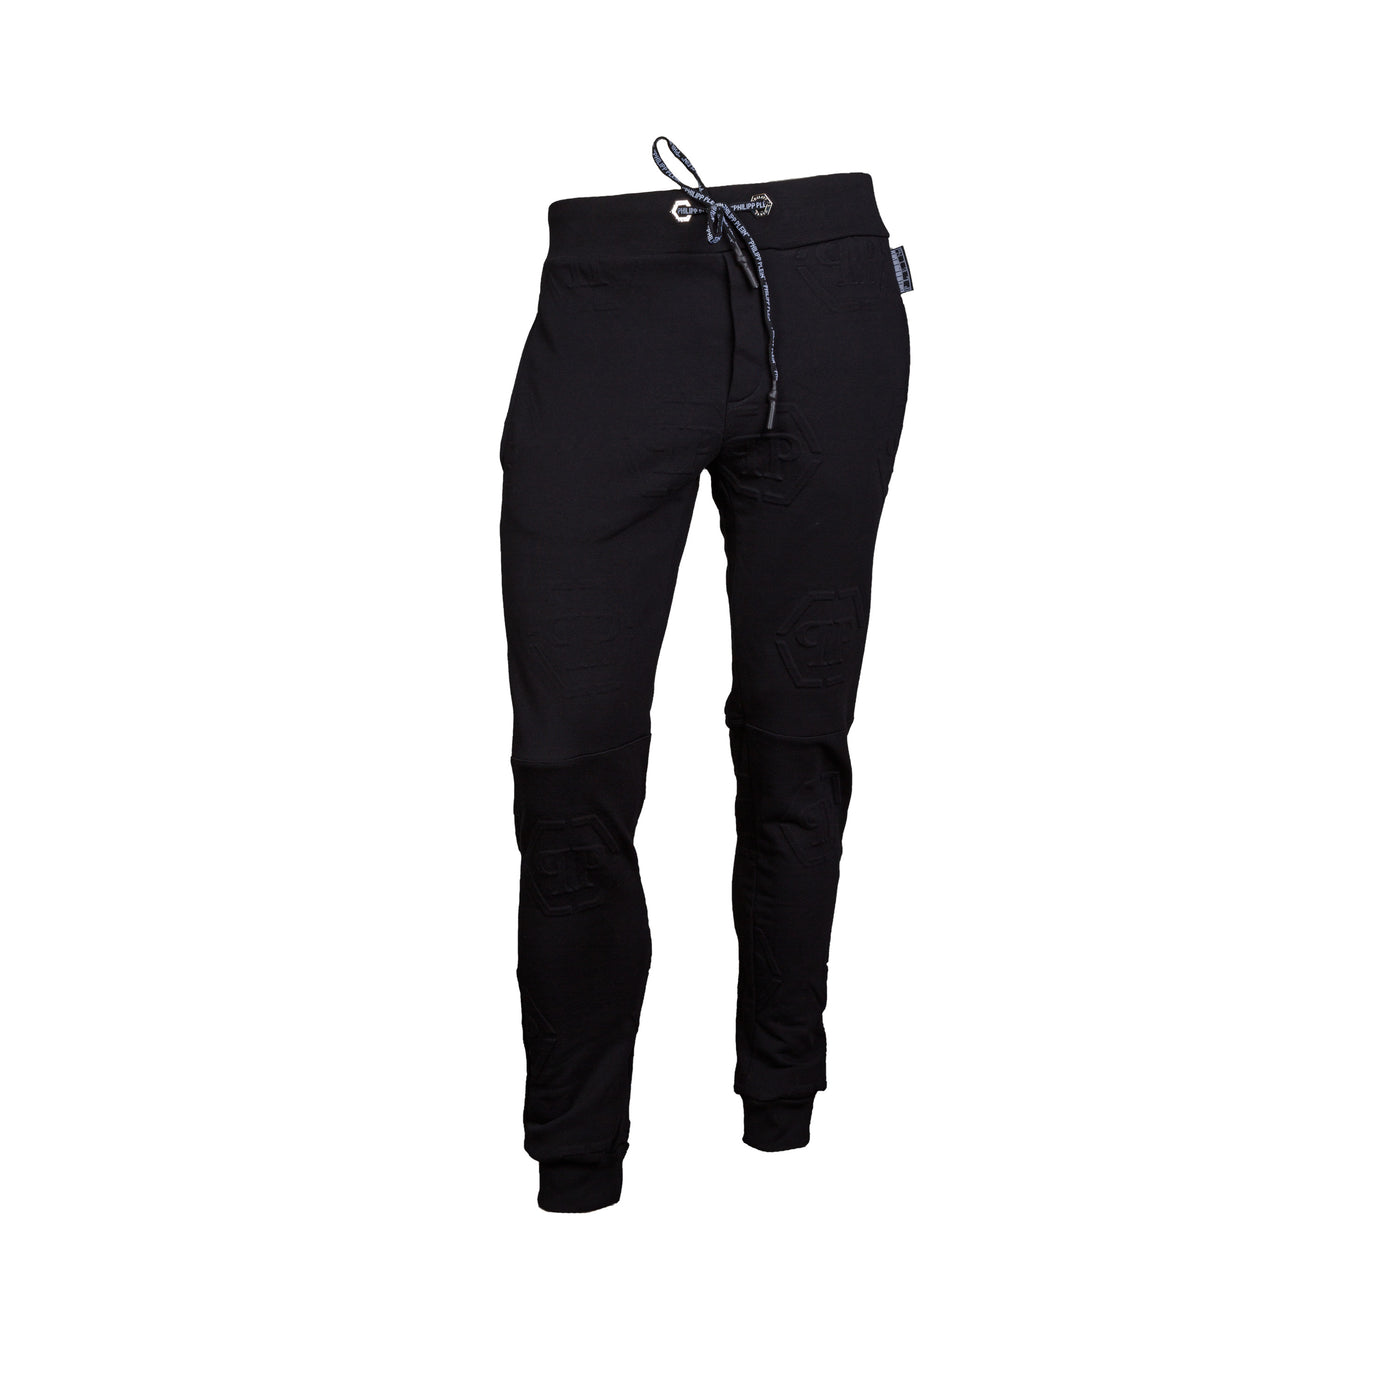 Philipp Plein |FW19| Jogging Pants